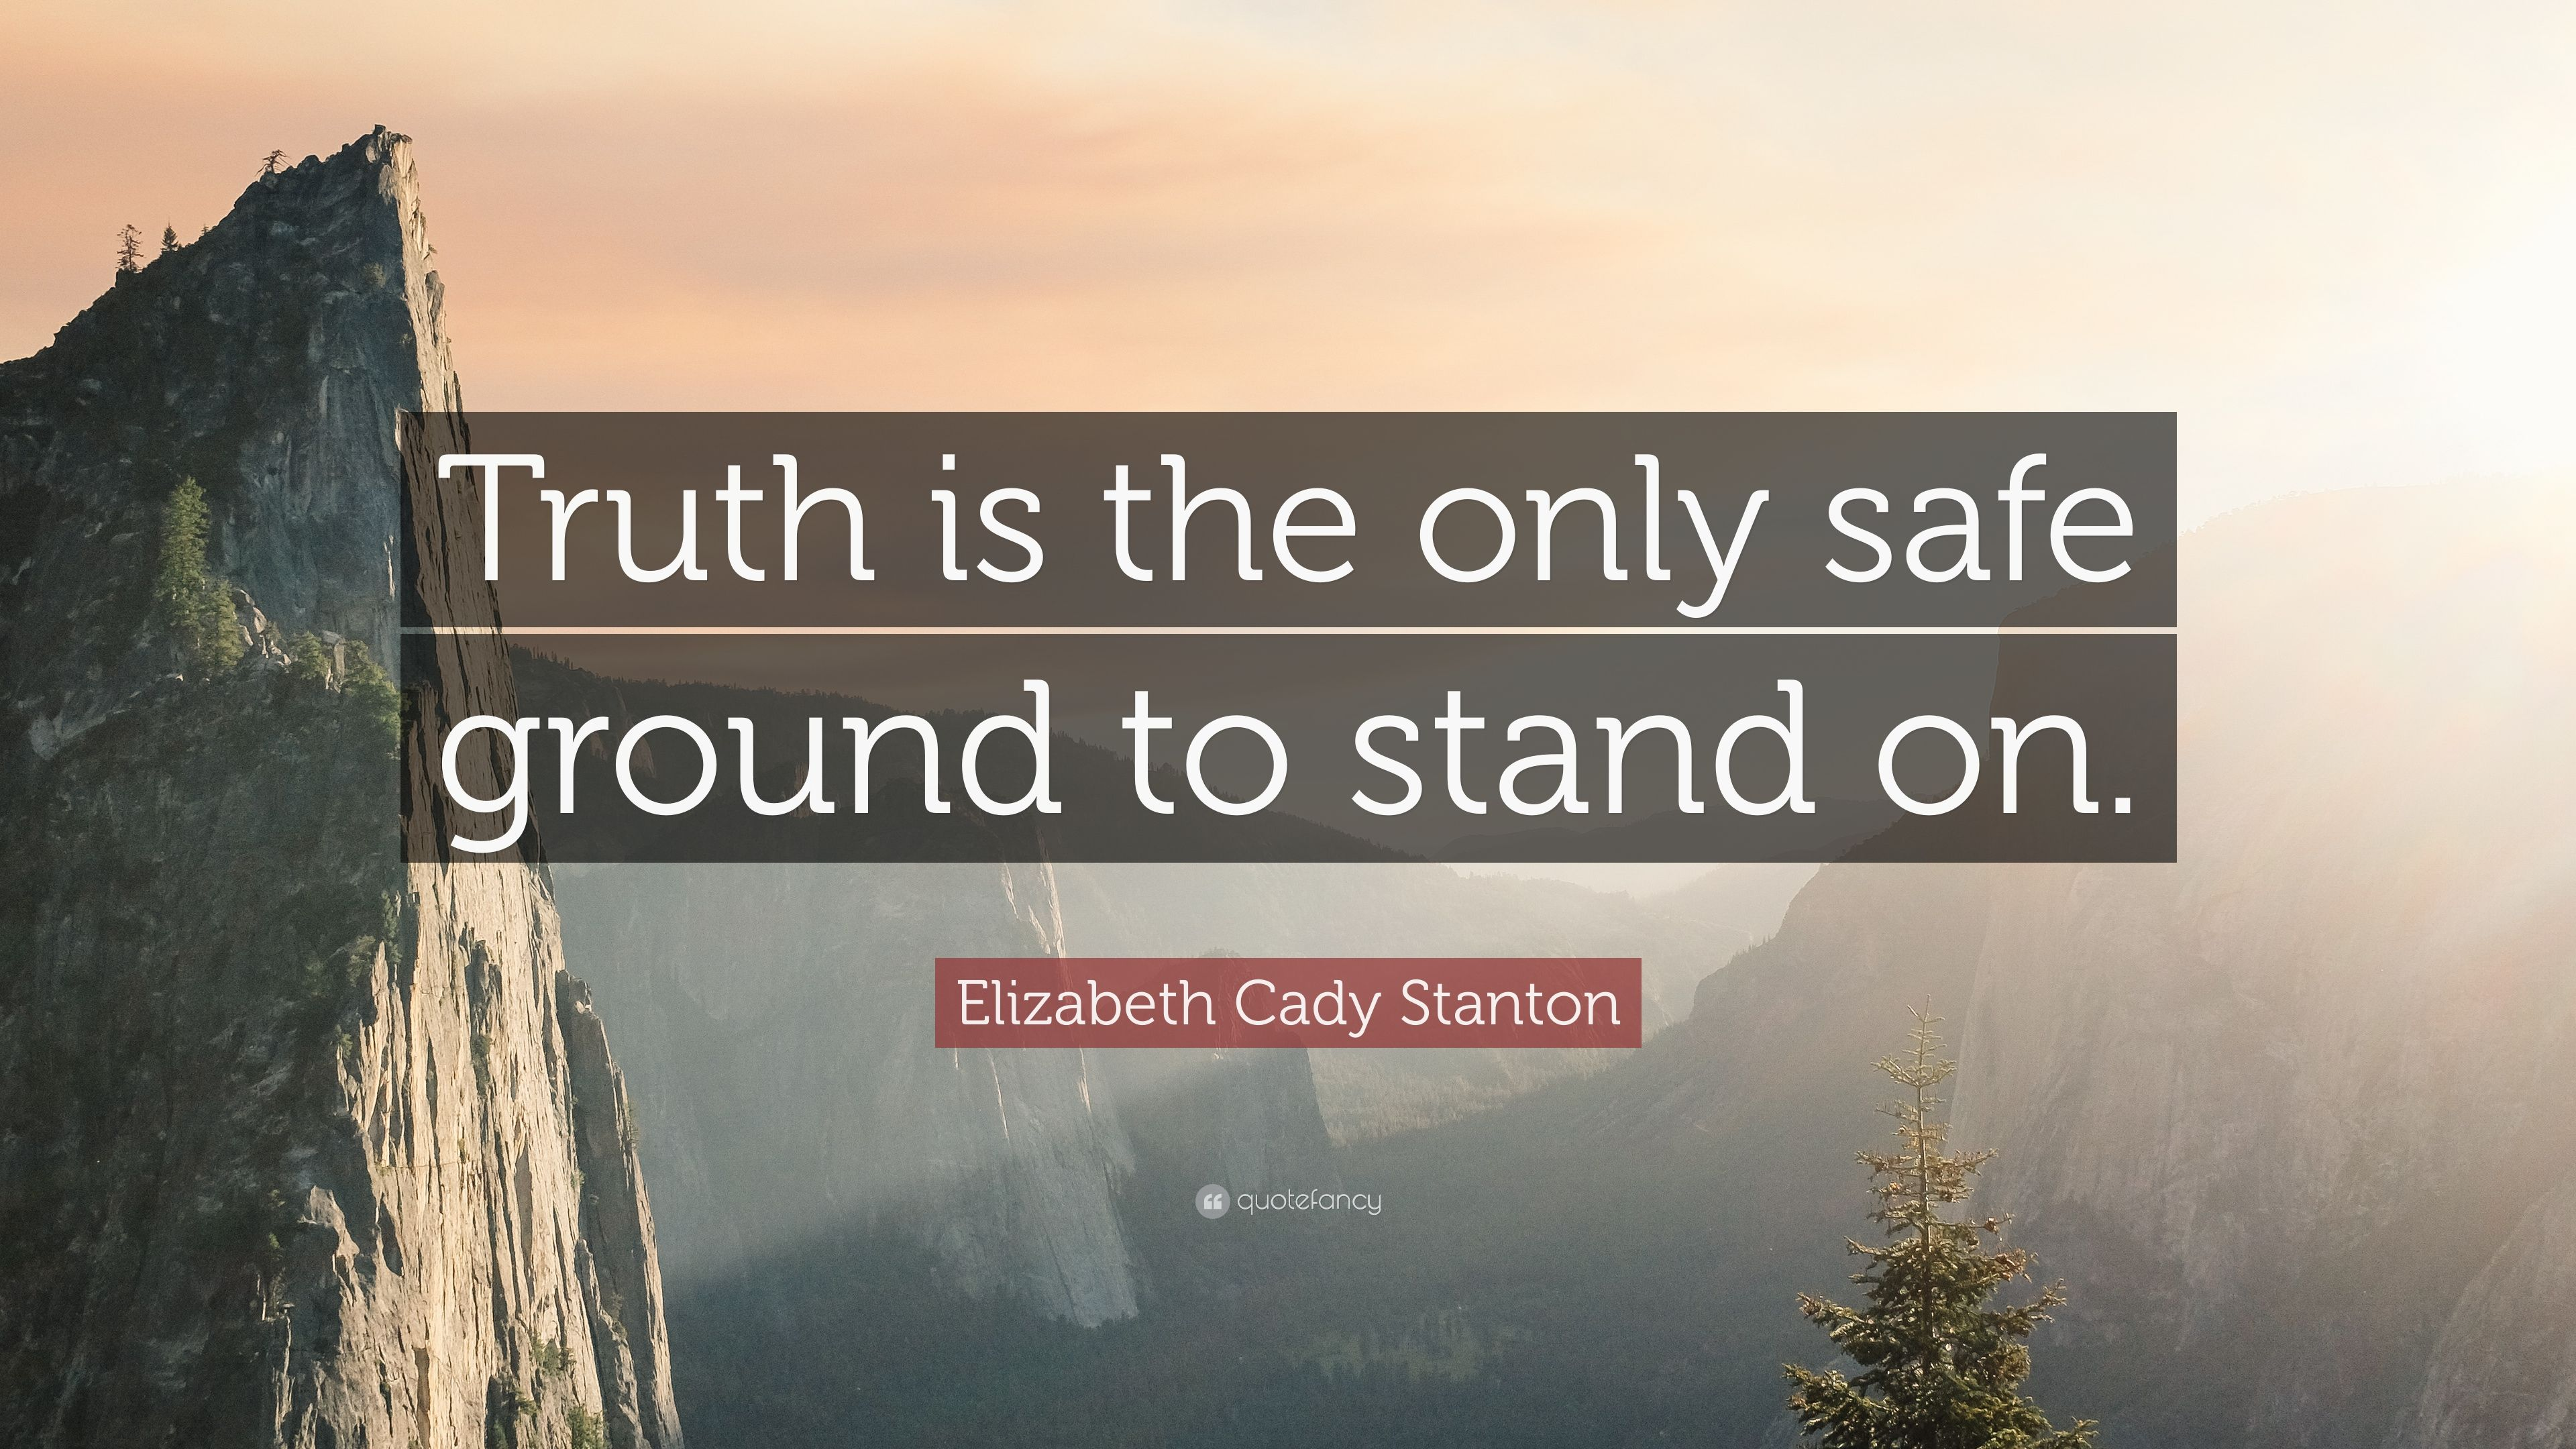 truth is the only safe ground to stand on essay  abolish stand your ground an eye for an eye will only make the whole world blind said by famous peacemaker mahatma gandhi this law has caused people to kill first instead of trying to avoid conflict.